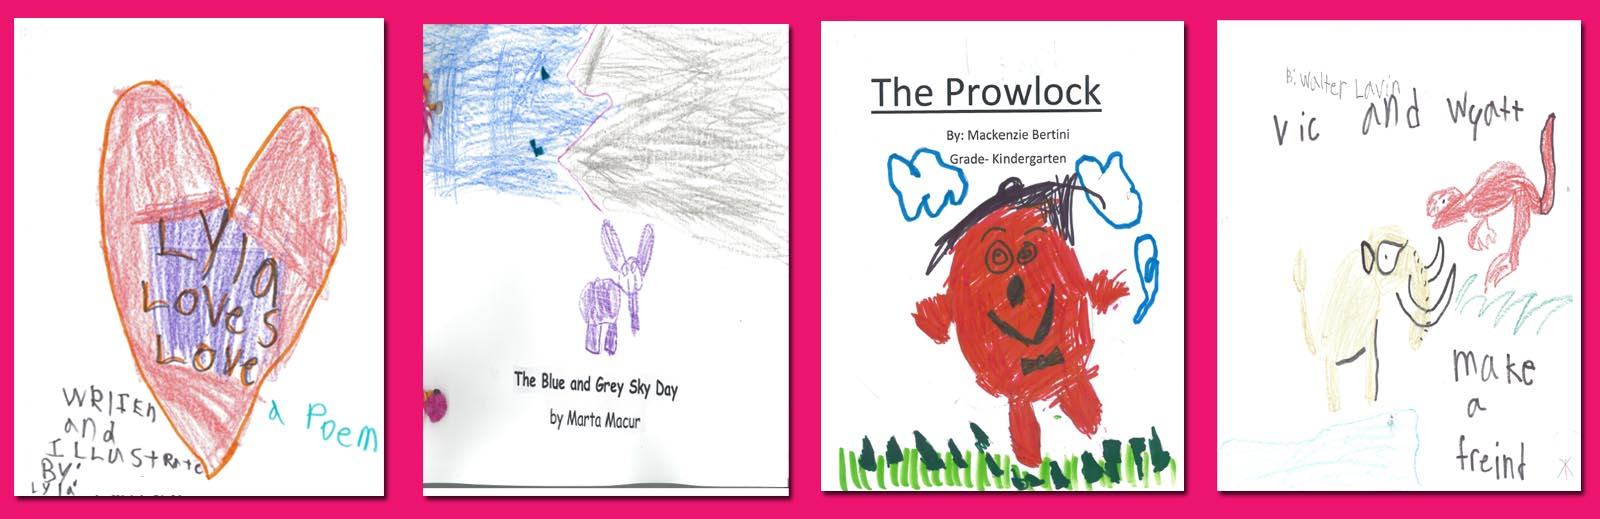 Kindergarten Winning Stories